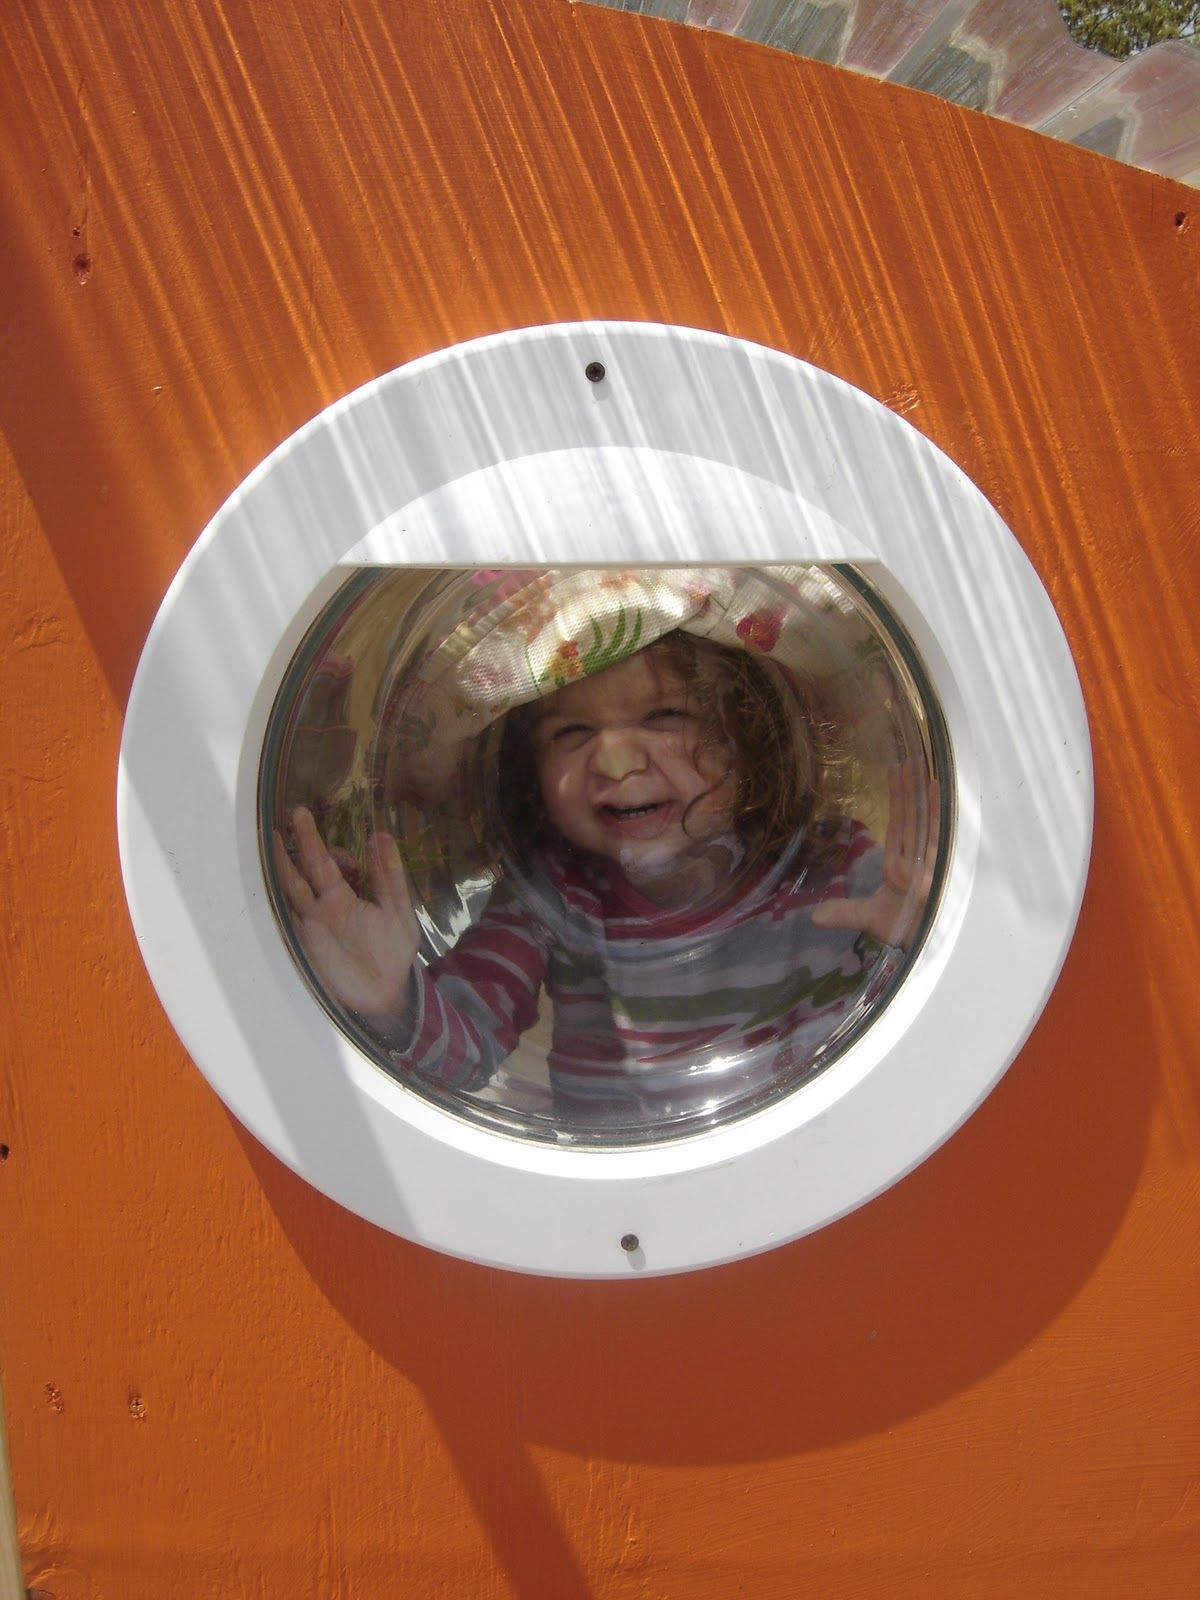 Recycled Front Loader Washing Machine Window For The